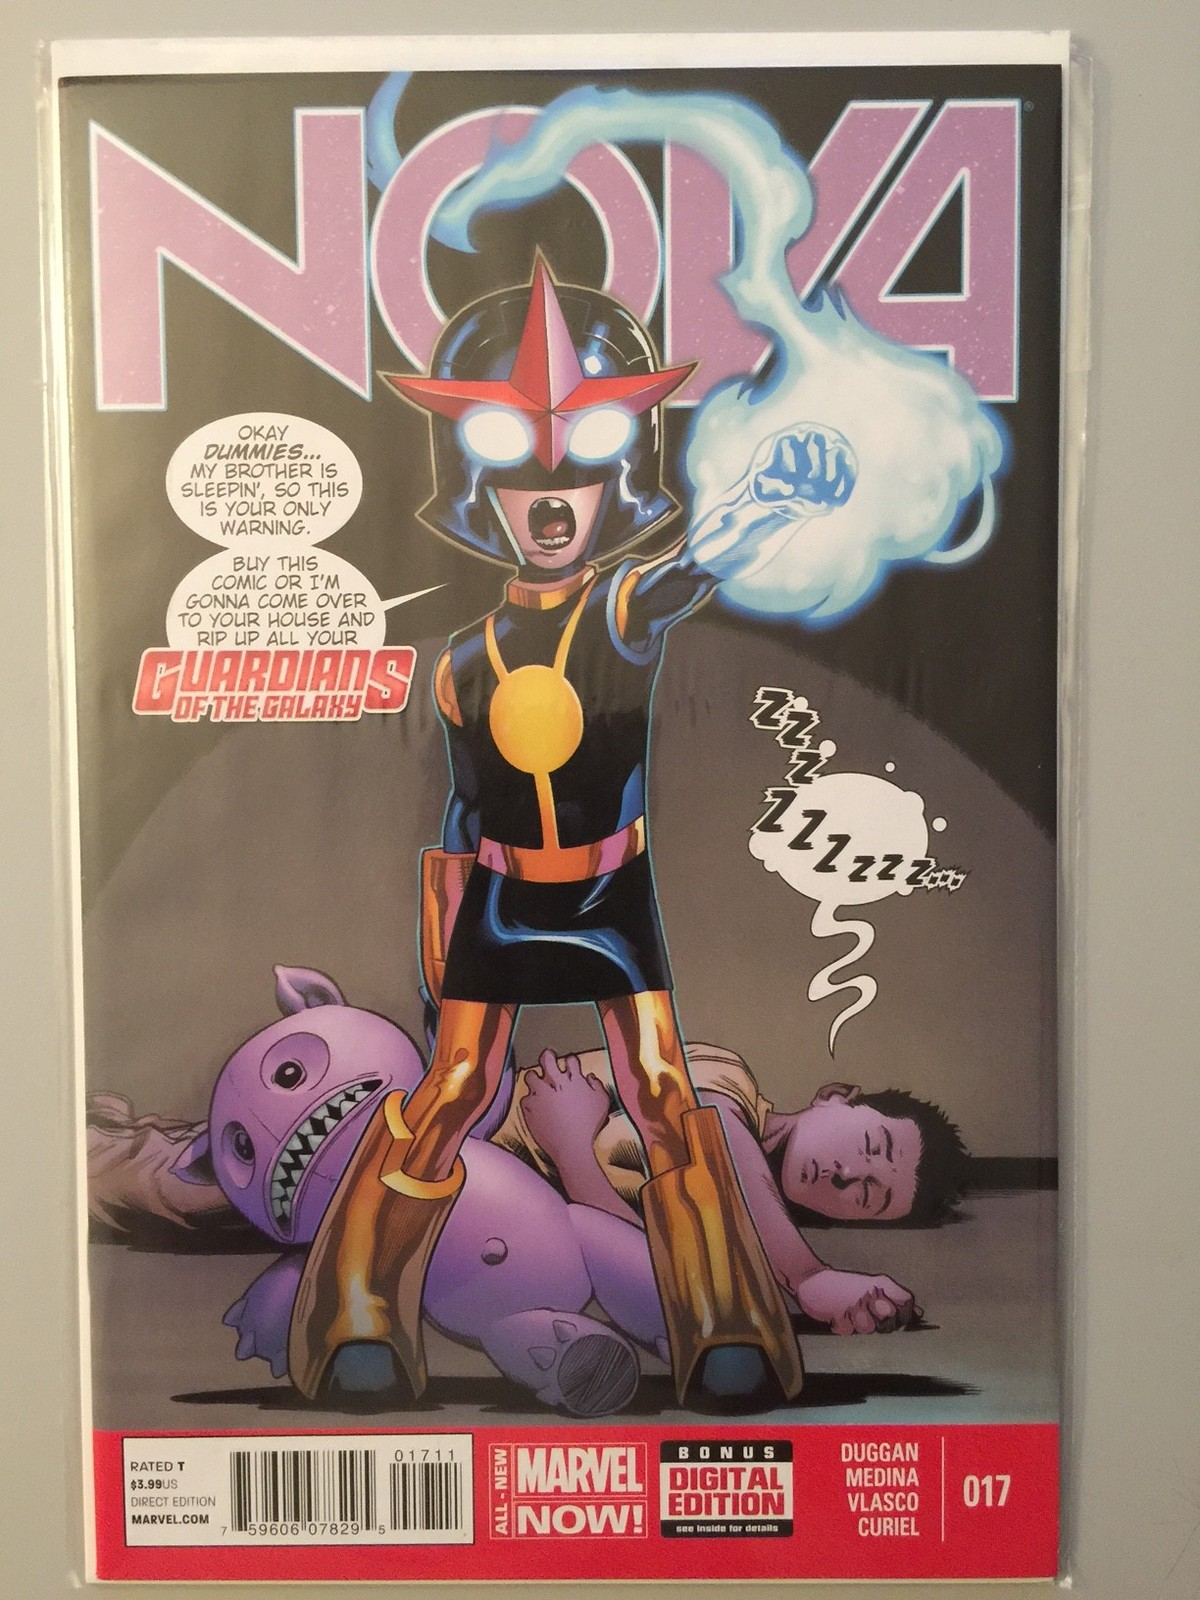 Primary image for Nova # 17 - 31 (Marvel lot of 15 - Guardians, Carnage, Original Sin,Axis, X-Men)